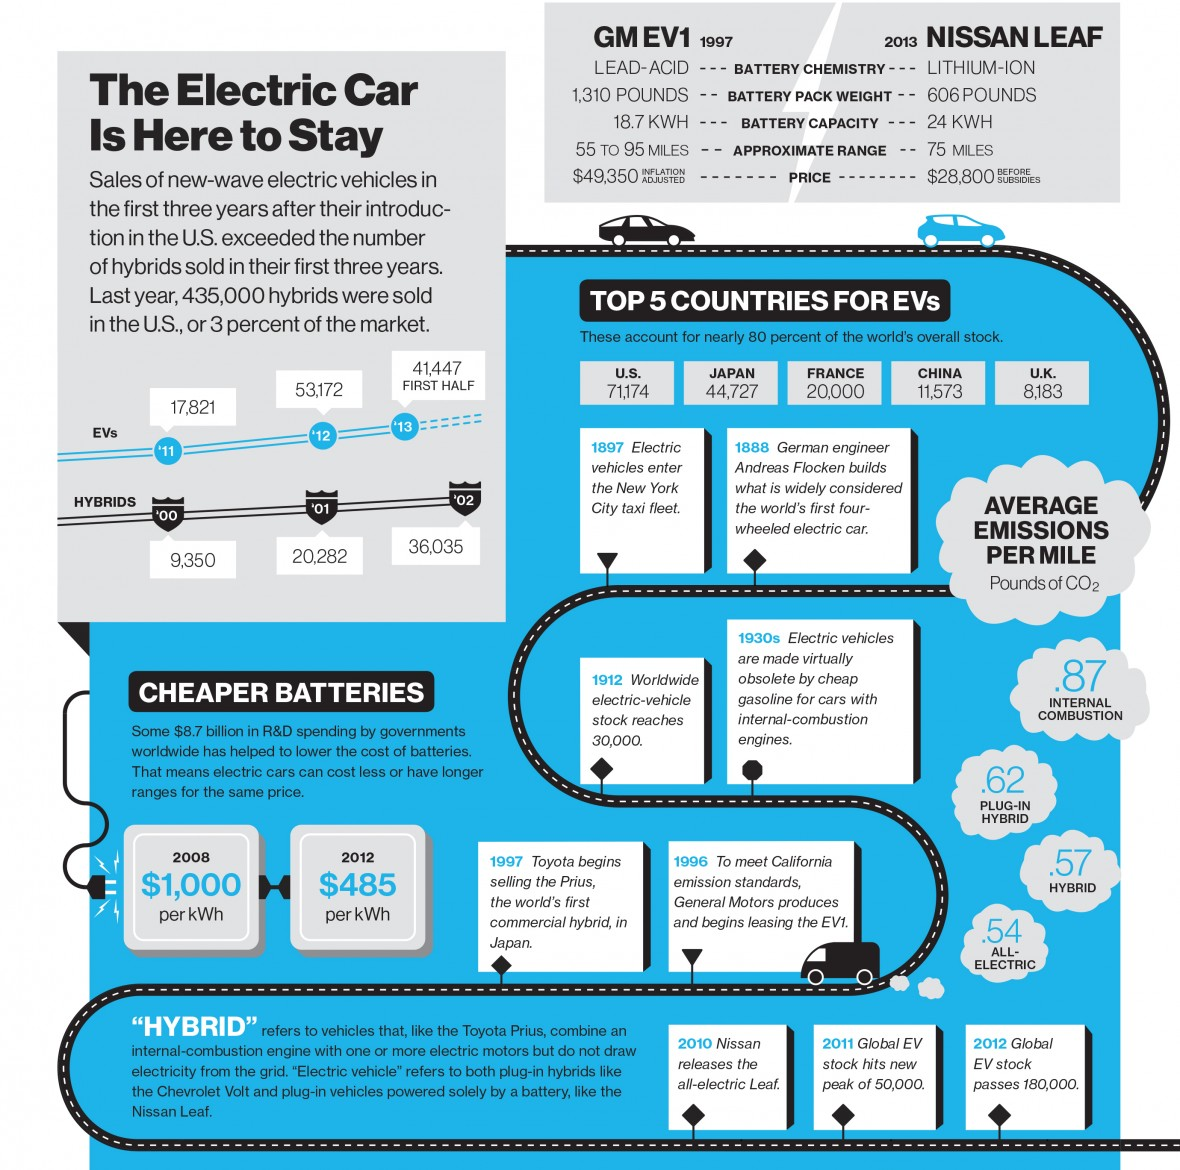 the electric car is here to stay mit technology review. Black Bedroom Furniture Sets. Home Design Ideas